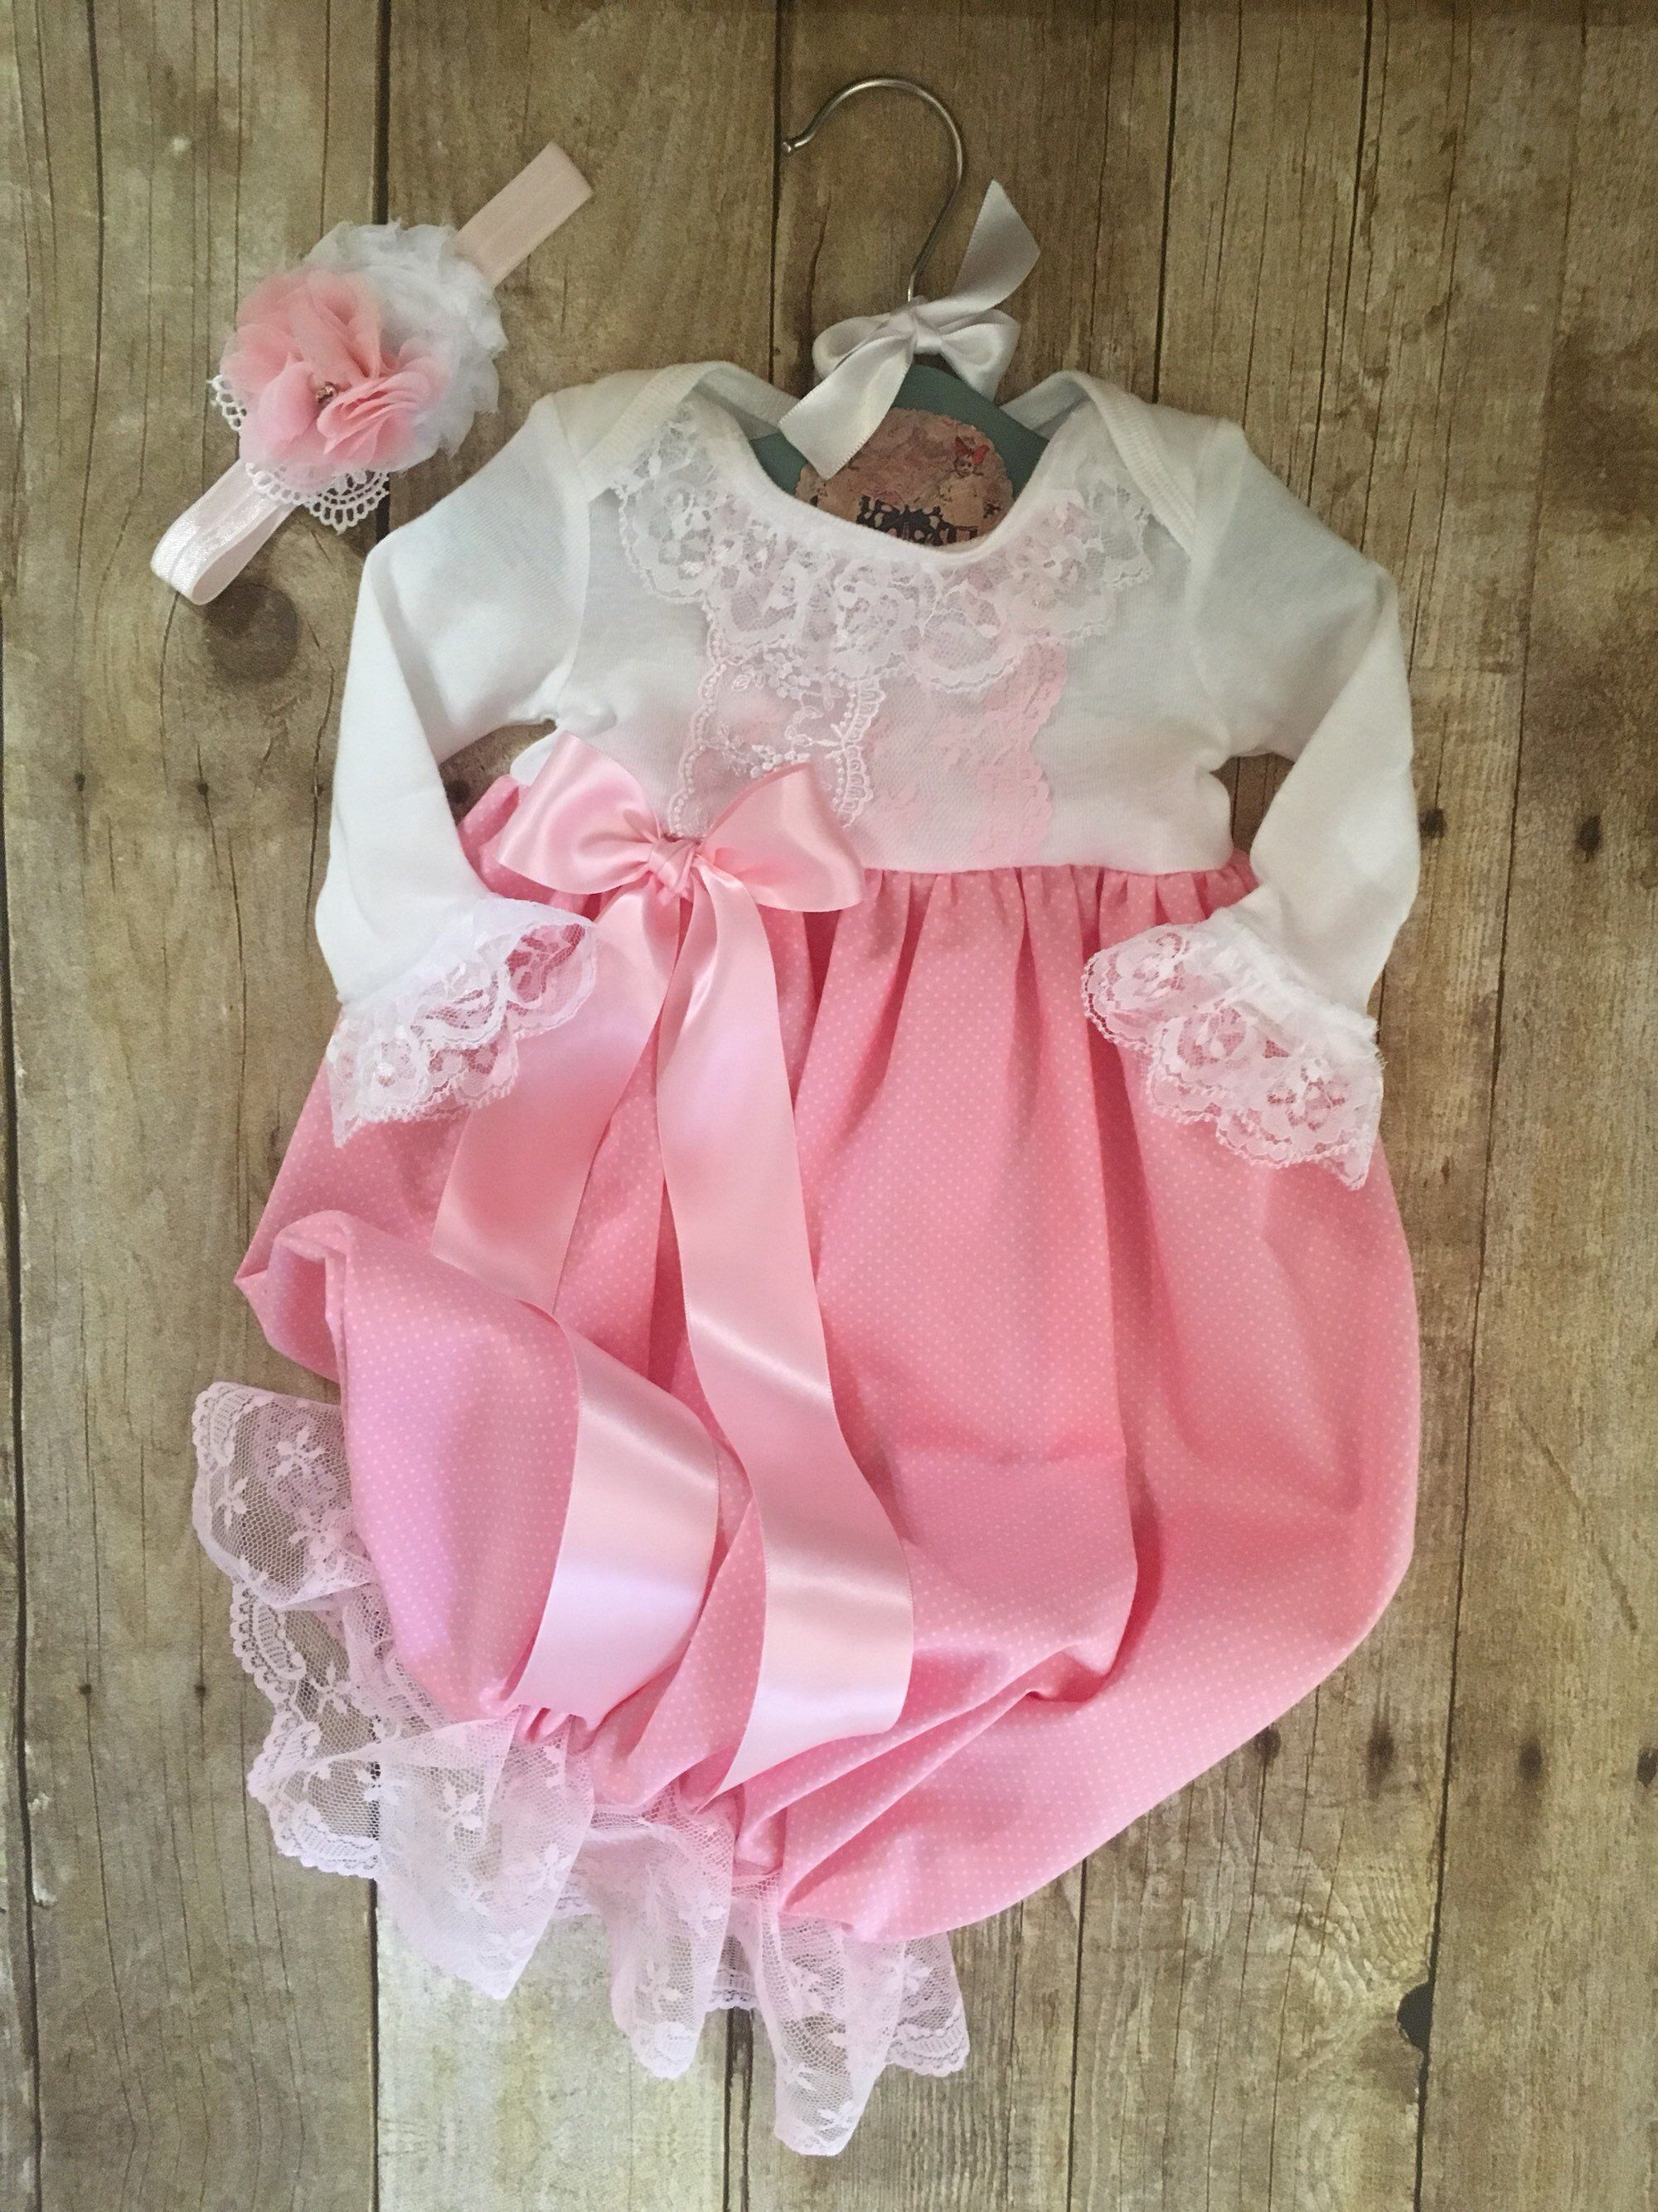 4 PIECES Newborn Girl Going Home Outfit. Preemie  Baby Girl Homecoming Outfit Premature Baby dress Butterfly baby drees